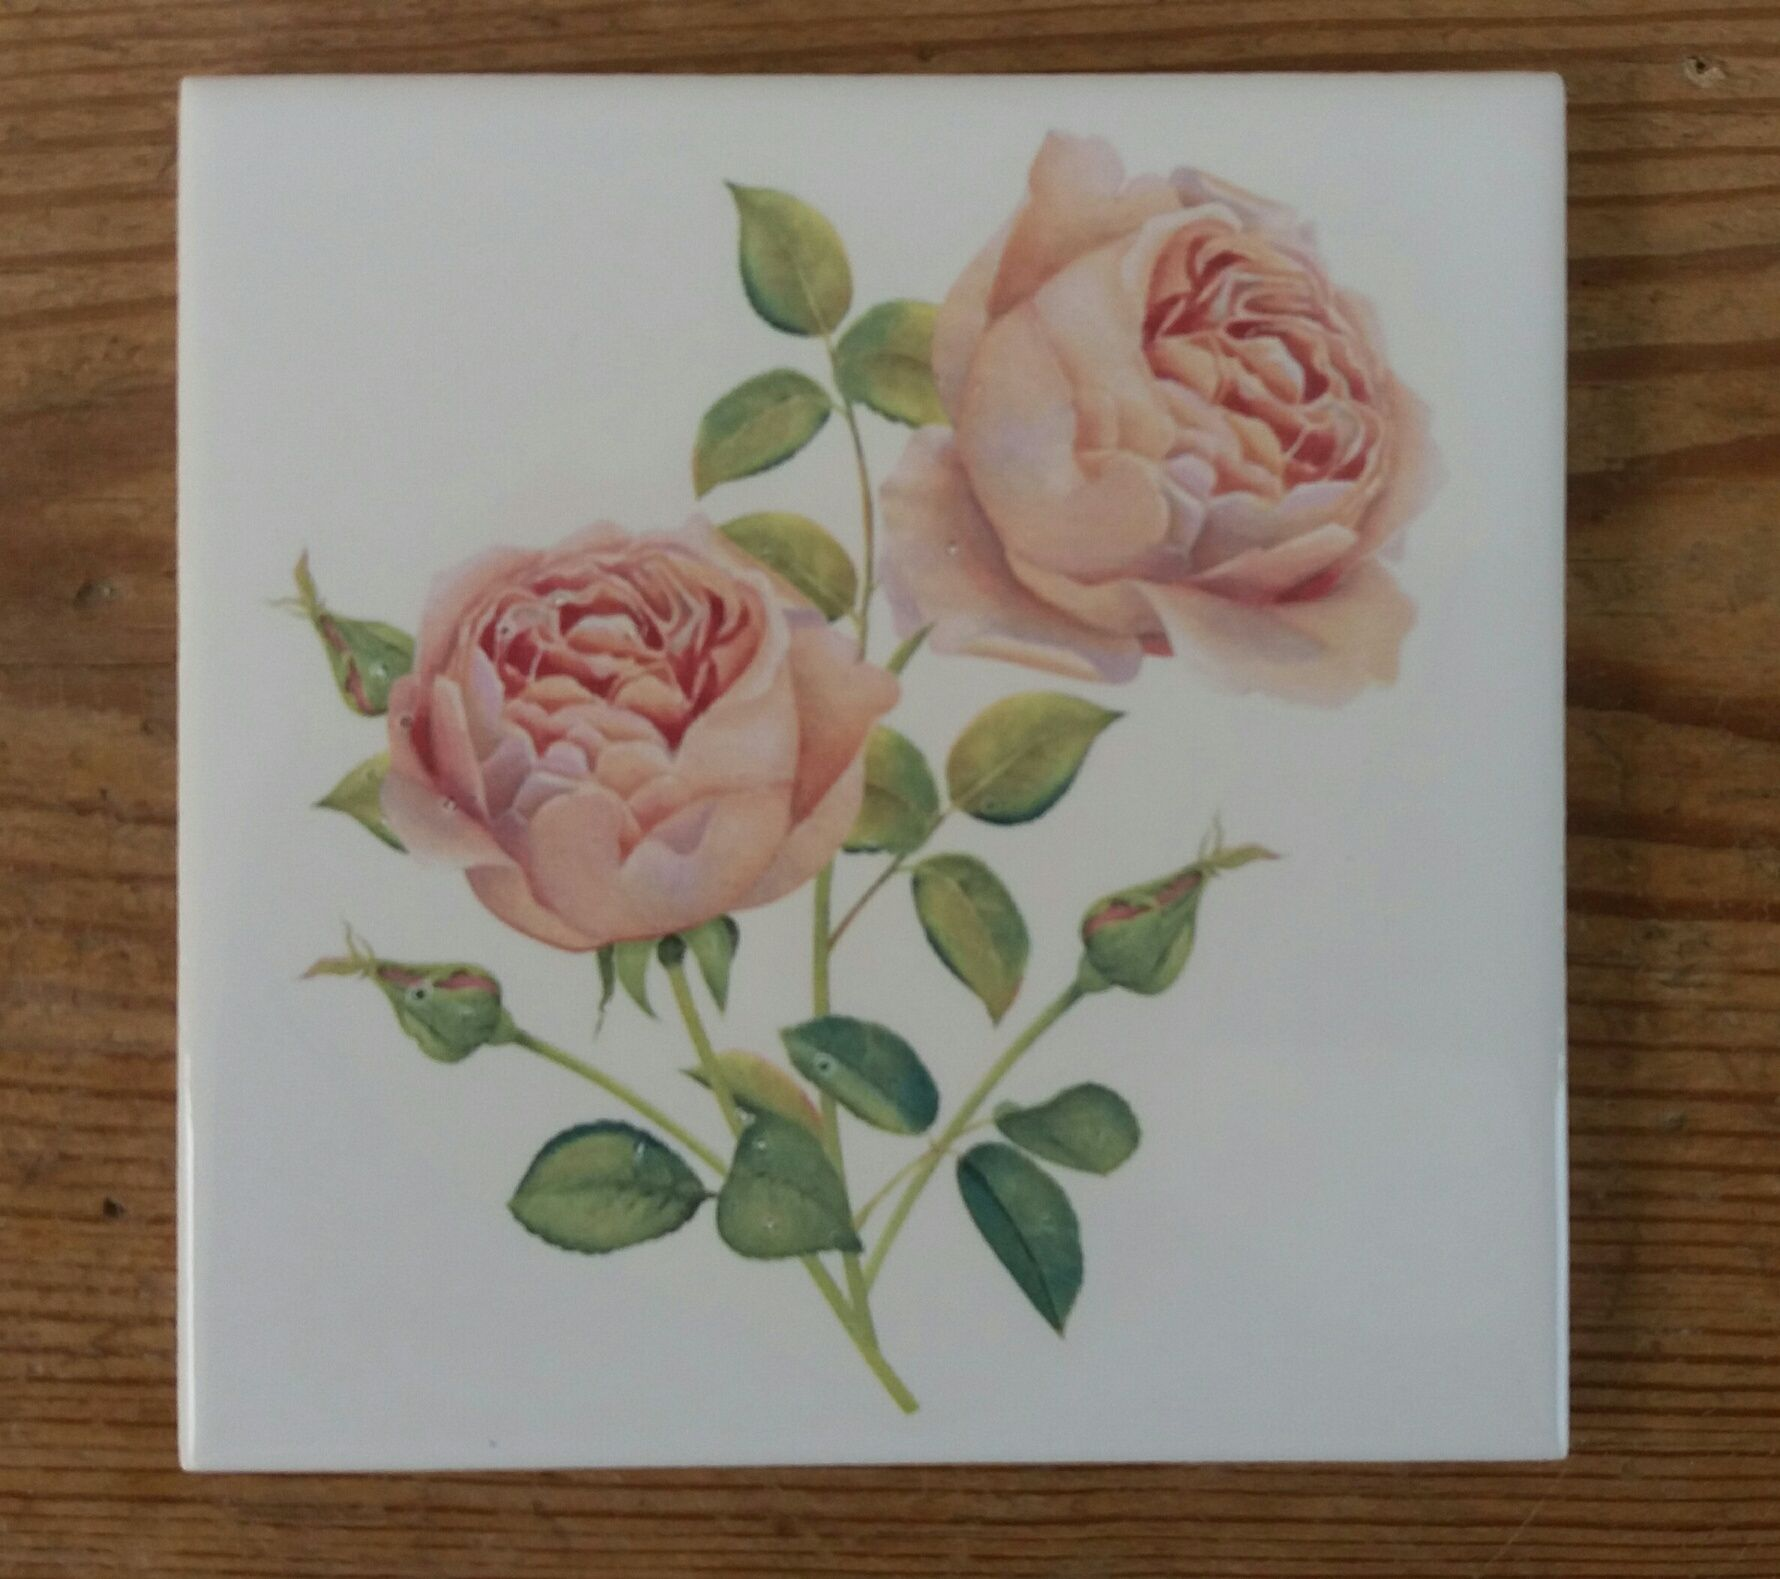 Marvelous Decorative Ceramic Wall Tile With Pink Roses By Floral Tiles. Originally A  Watercolour Painting, Giving A Hand Painted Effect. Mix And Match With Some  Of ...